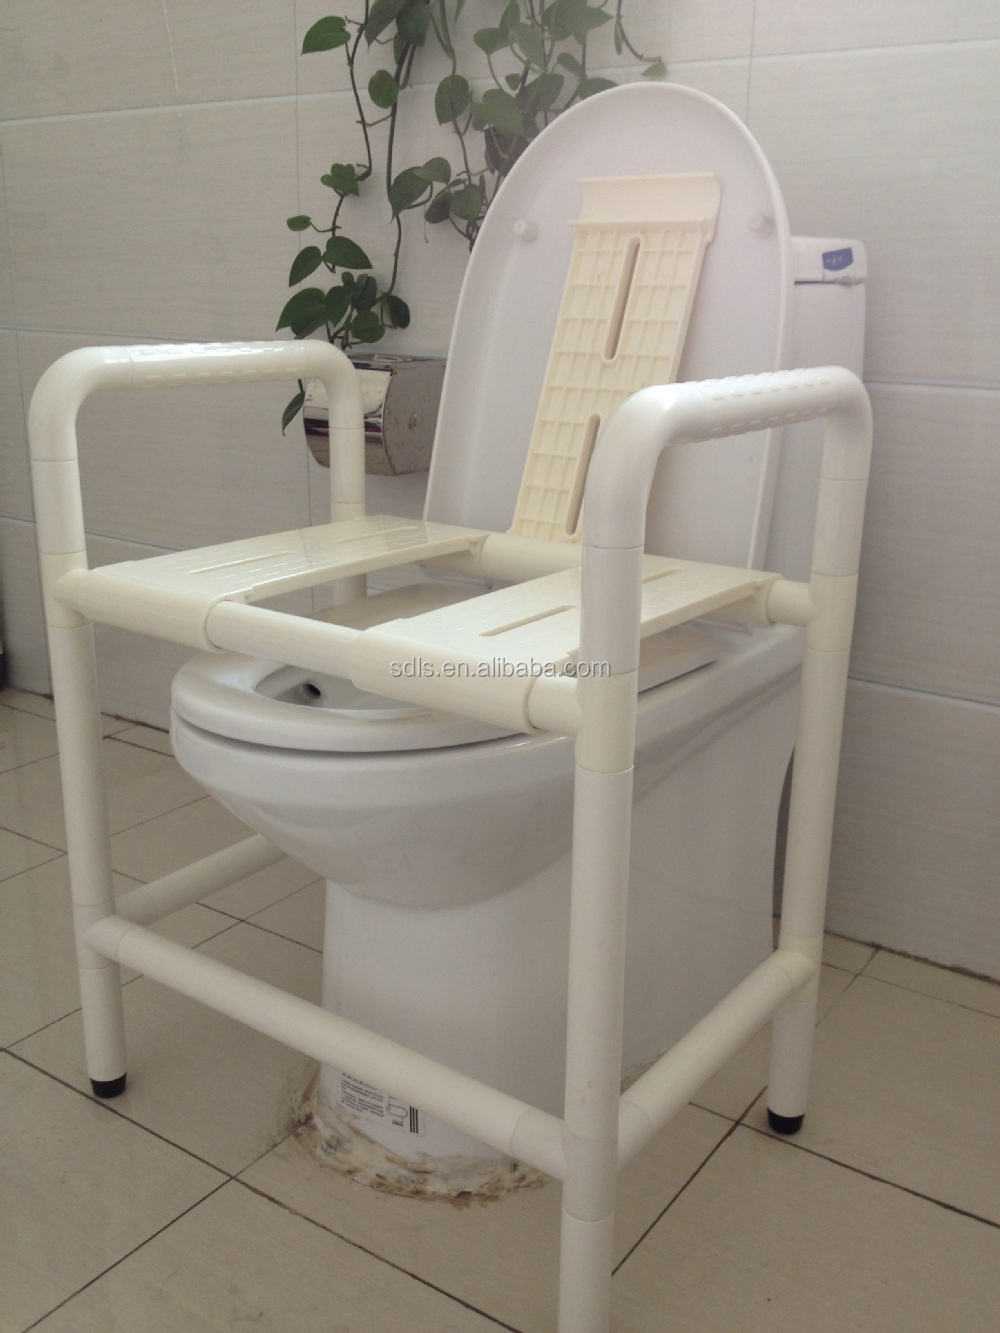 Toilet Seat Chair For Elderly Disabled Buy Toilet Seat Chair Disabled Toile